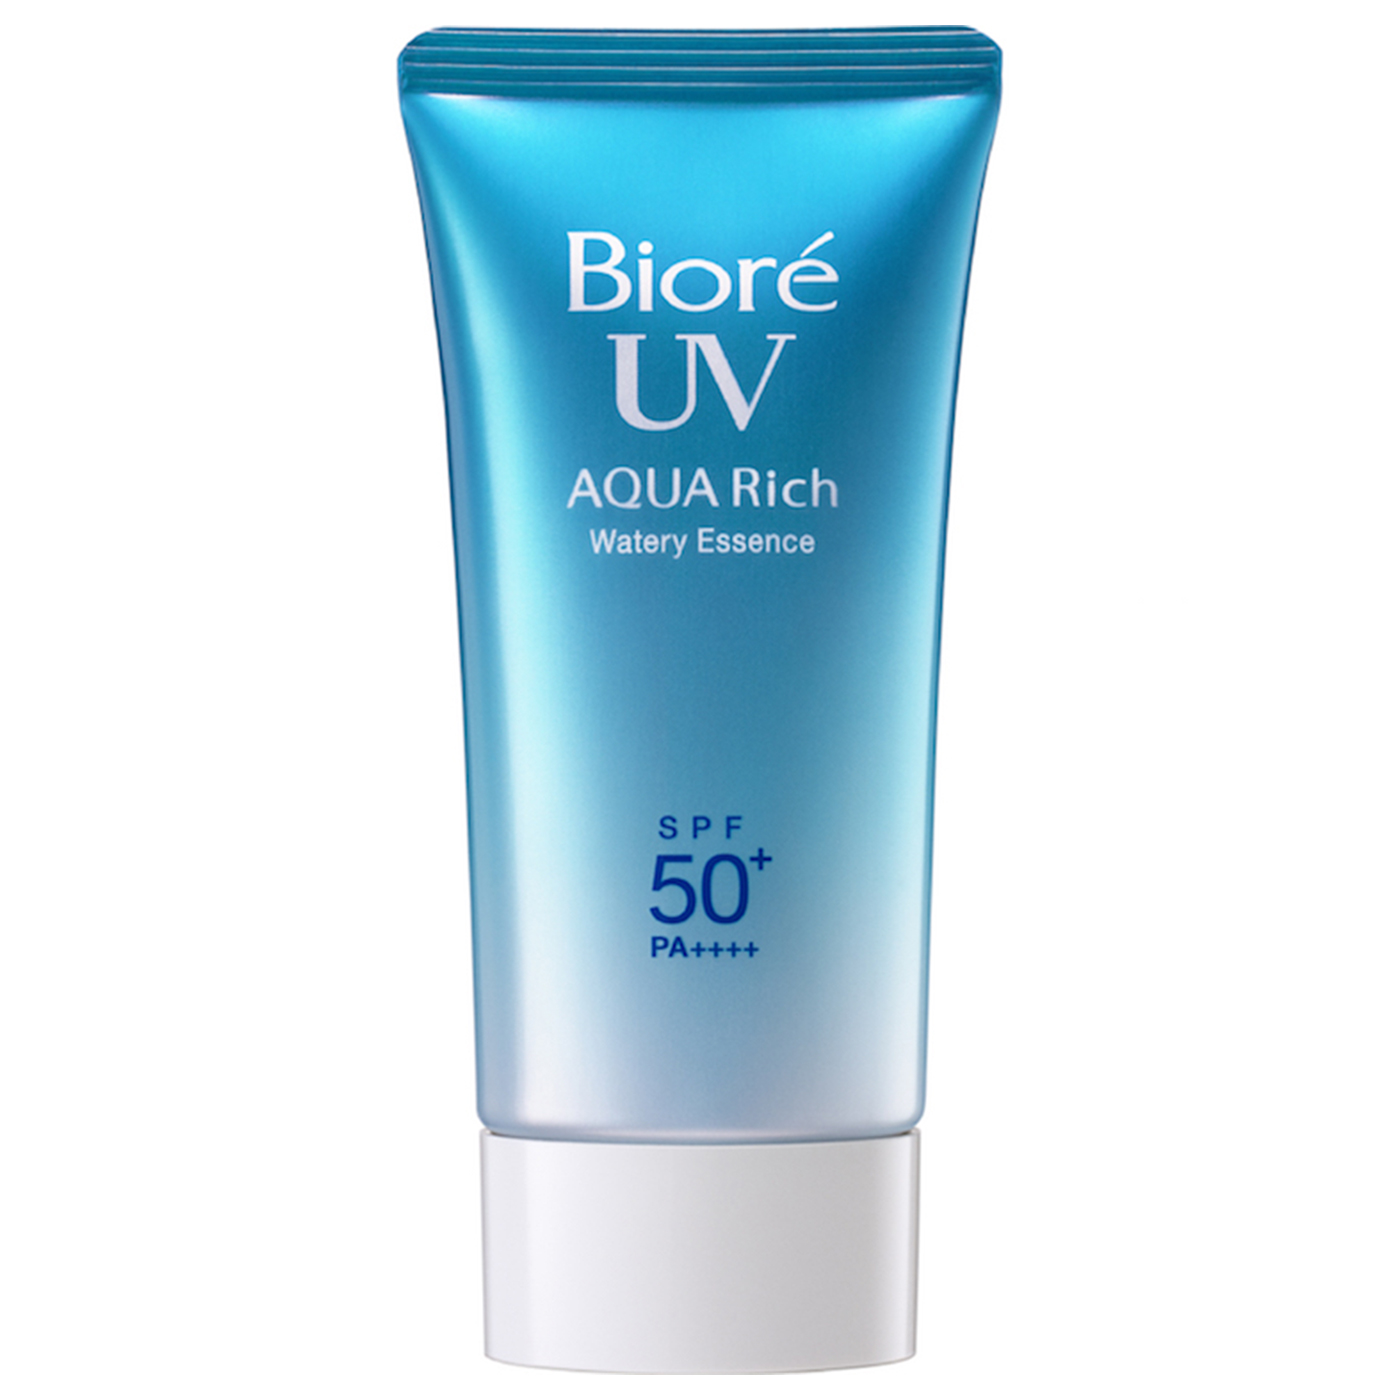 Biore Lotion UV Aqua Rich Watery Essence SPF50 50g